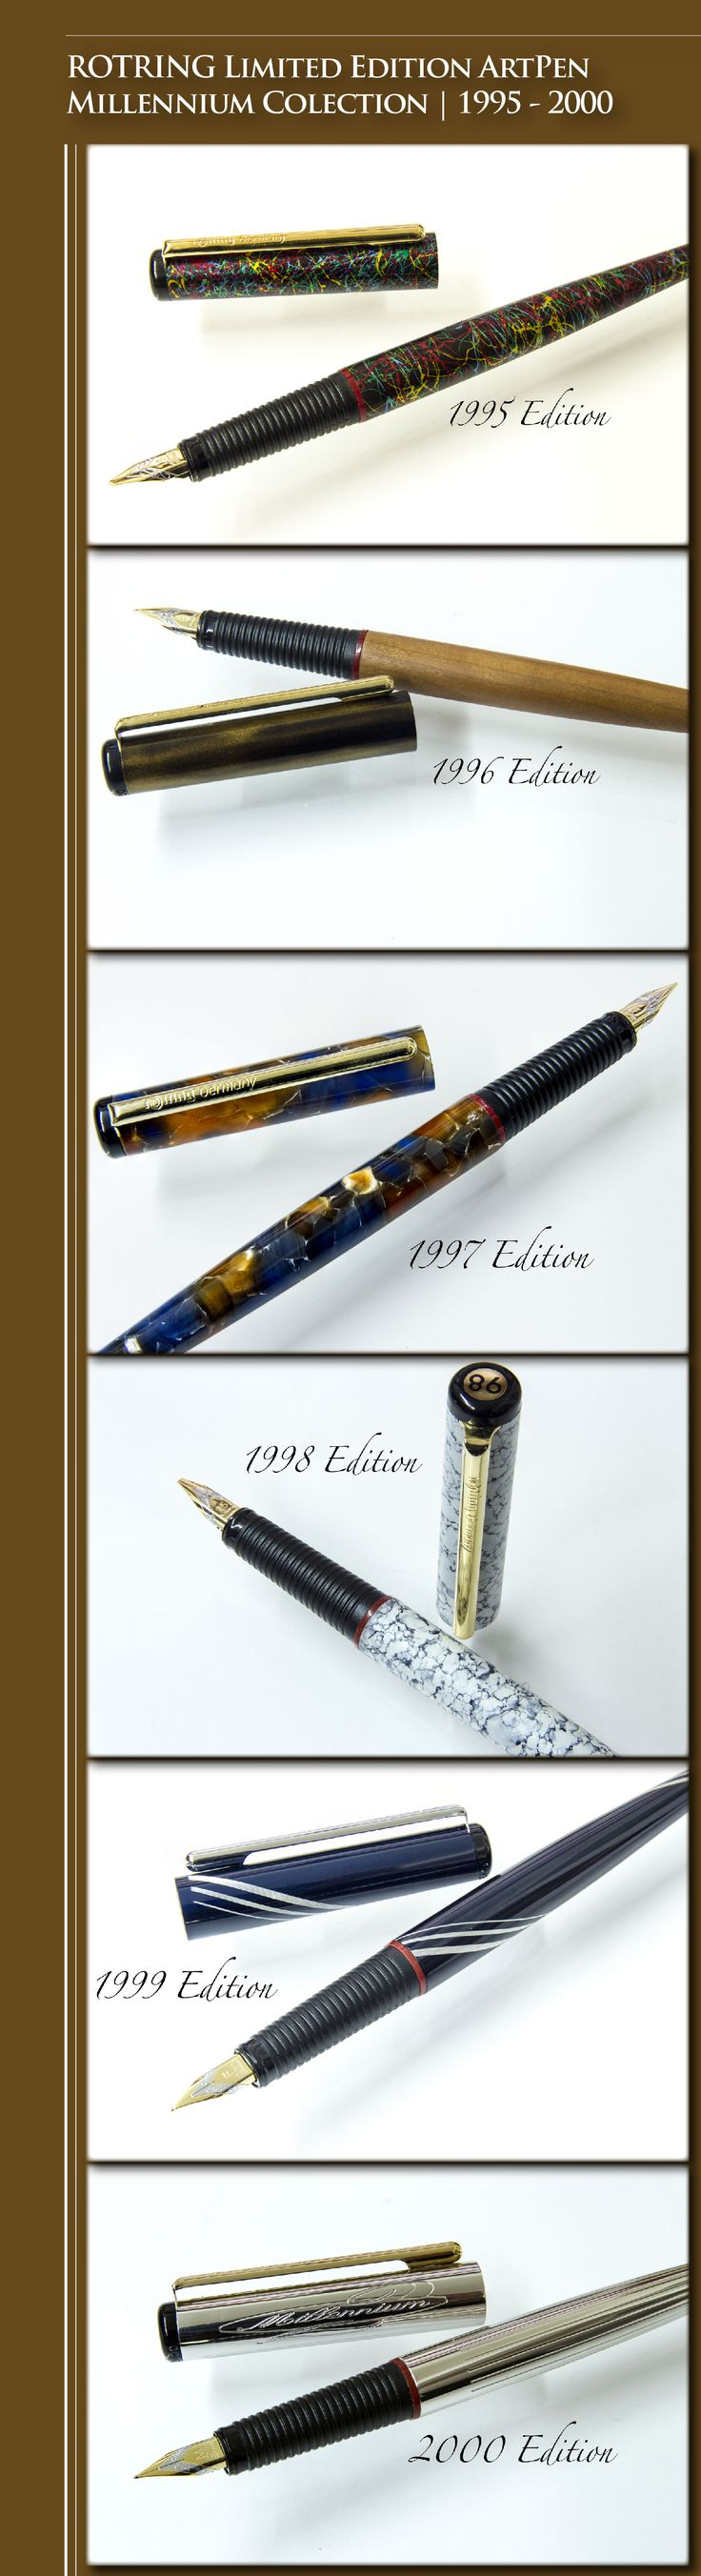 ROTRING Limited Edition ArtPen Millennium Collection | 1995 - Multicoloured 'paint splattered' metal | 1996 - Hand-lacquered metal cap and American Cherry wood barrel | 1997 - Multicoloured translucent resin  | 1998 - Hand painted lathe-turned aluminium with a multi-layer enamelling process | 1999 - Polished hand-turned aluminium with brilliant marine-blue anodised surface | 2000 - Solid hand-turned brass etched with a guilloche pattern, silver-coated and rhodium plated - Germany